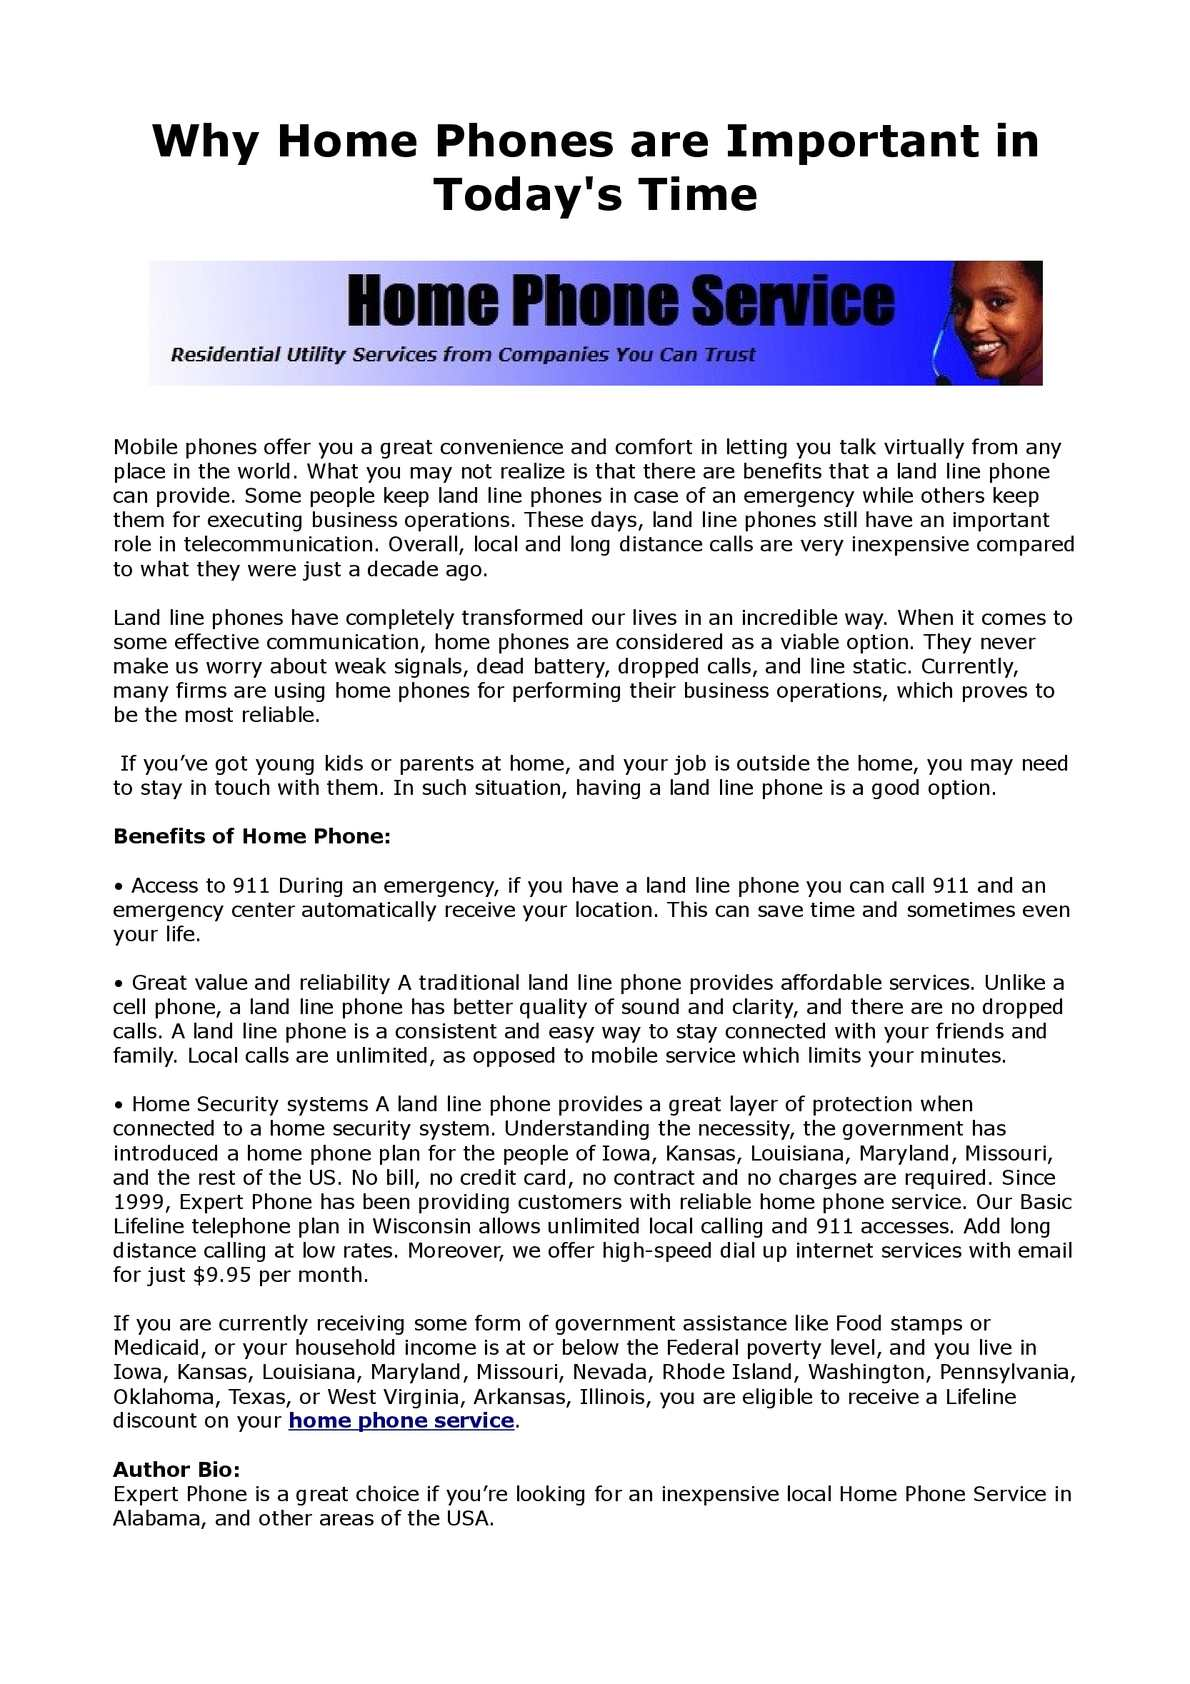 a house phone home phones way to stay connected at home Why Home Phones are Important in Todayu0027s Time